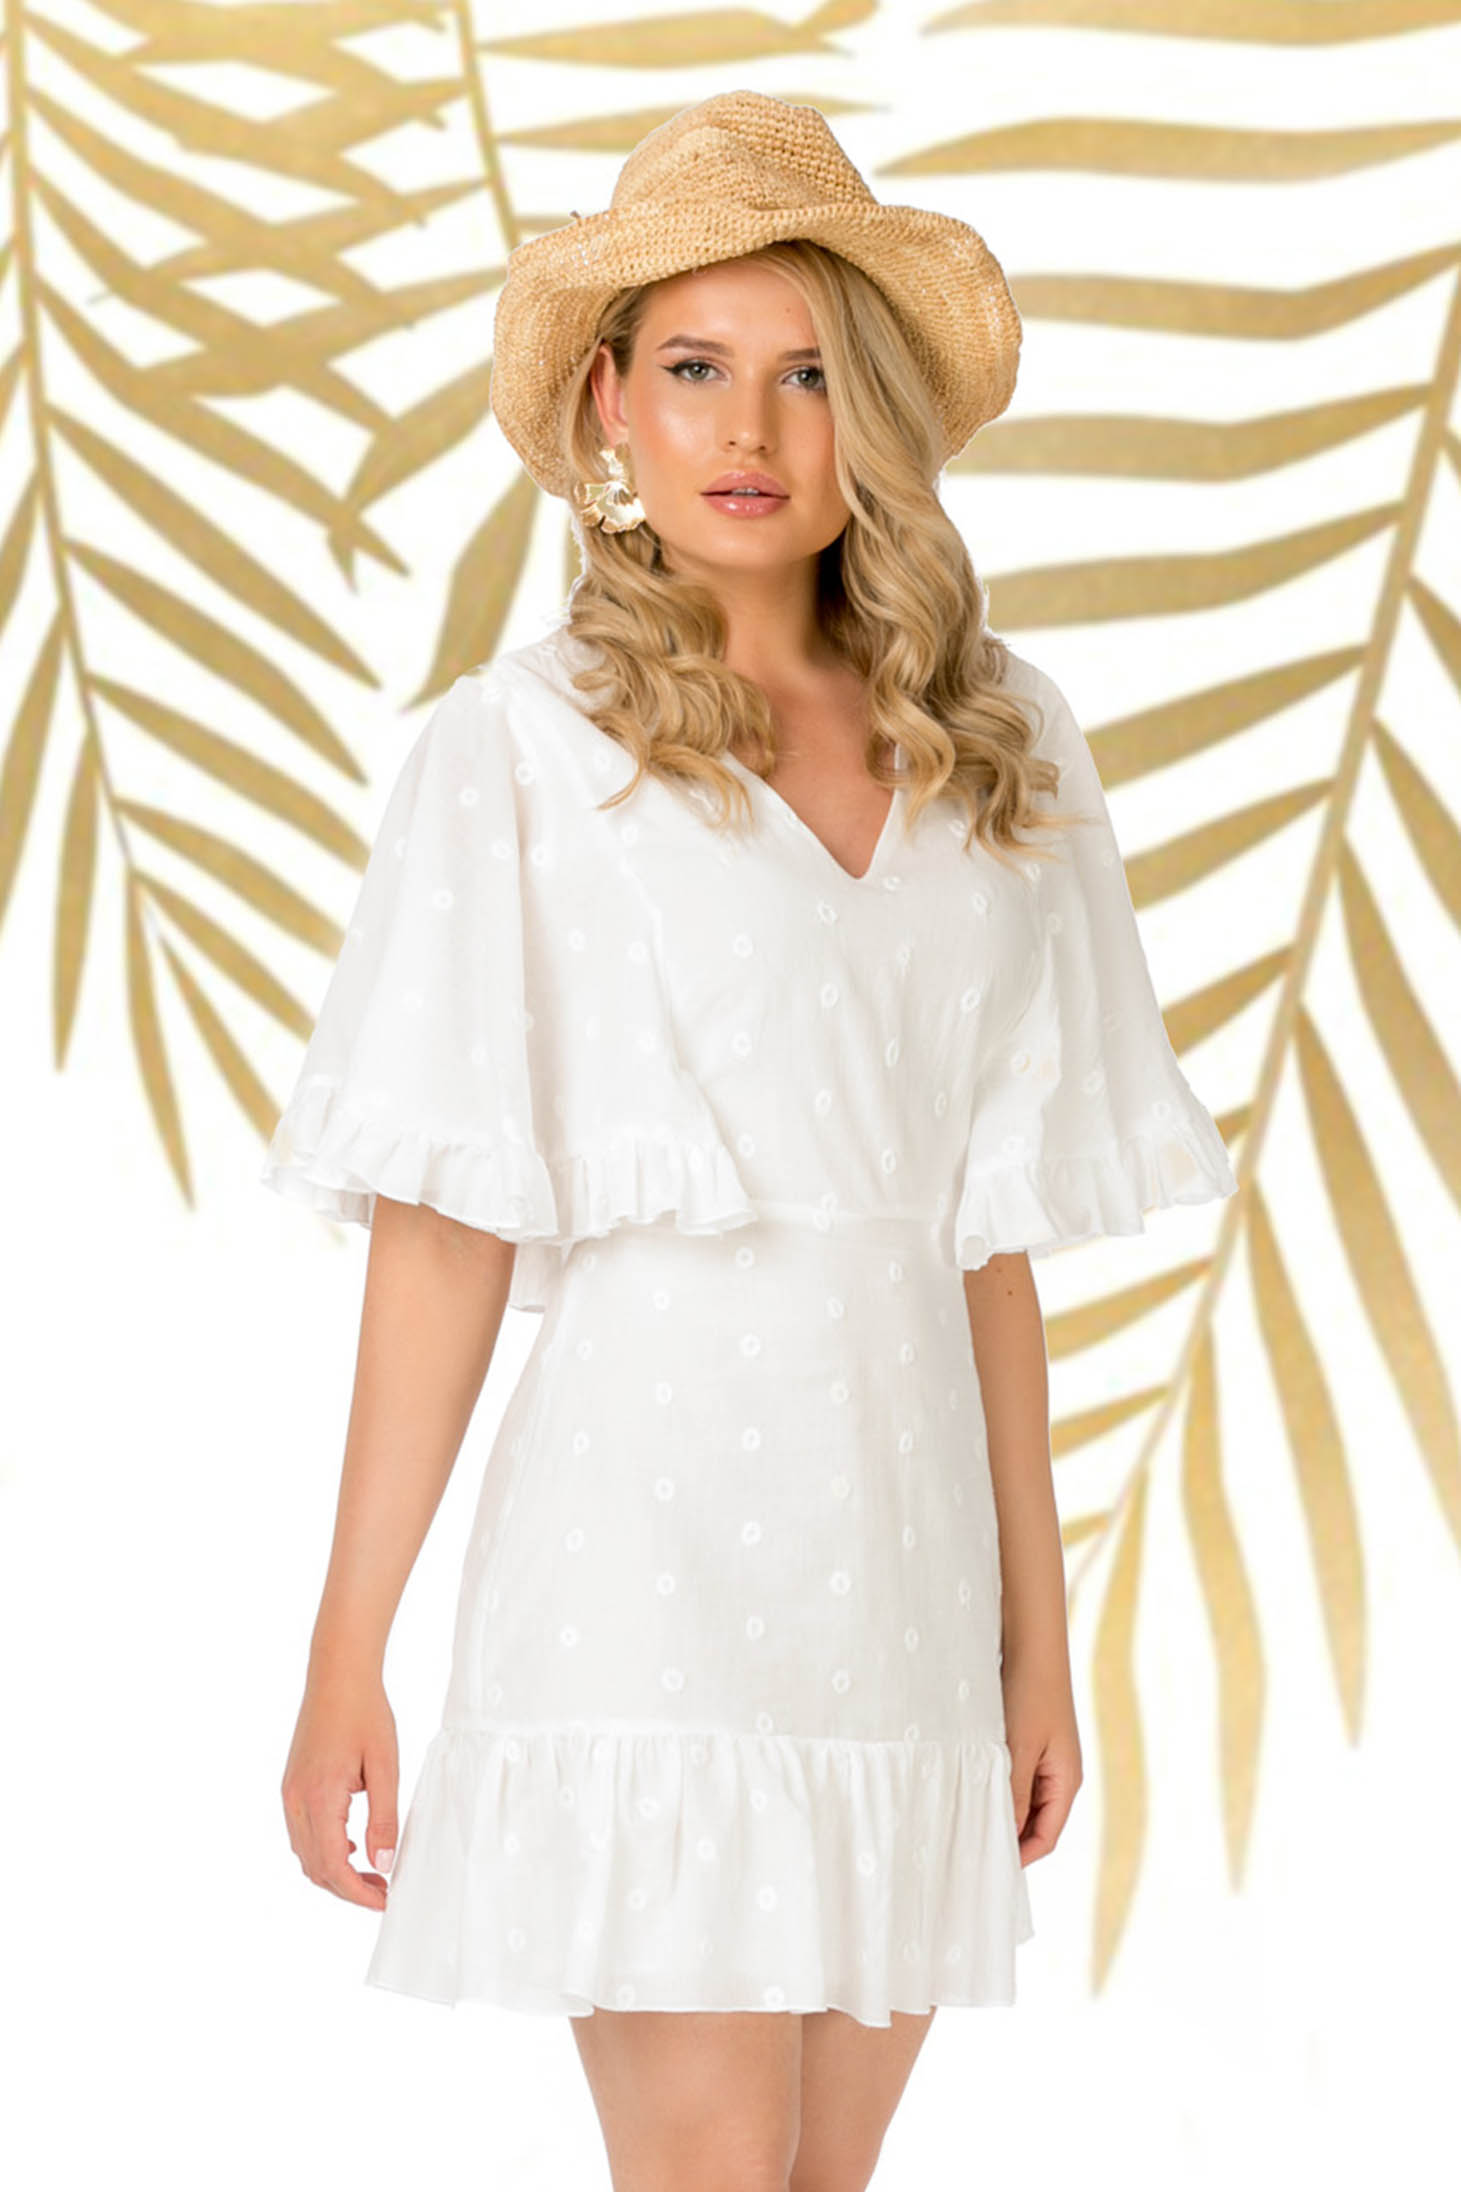 Dress white daily short cut a-line with butterfly sleeves with ruffles at the buttom of the dress cotton